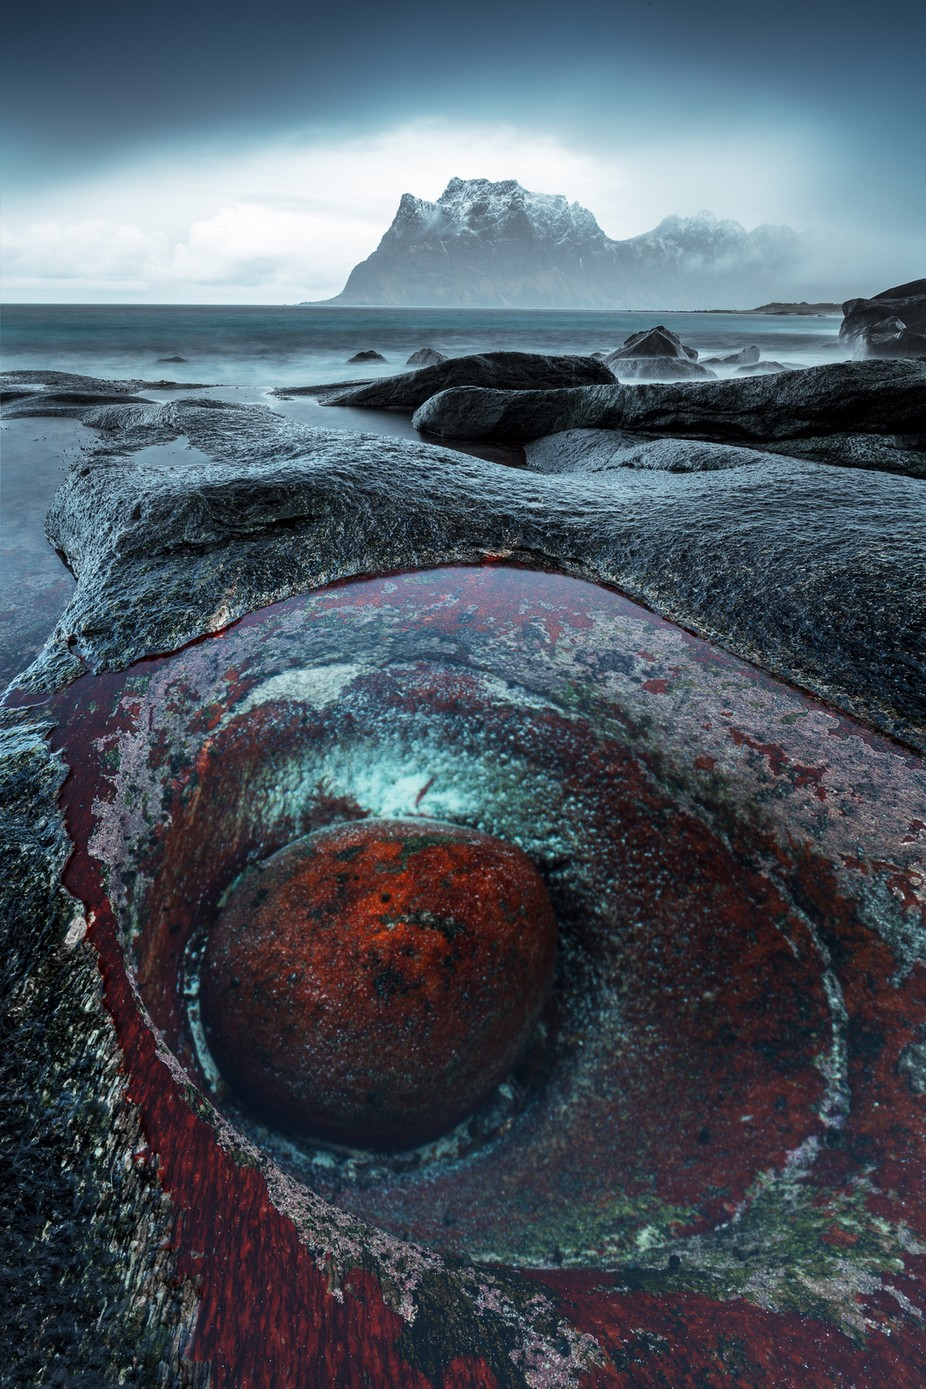 Dragons eye by madspeteriversen - The Nature Lover Photo Contest